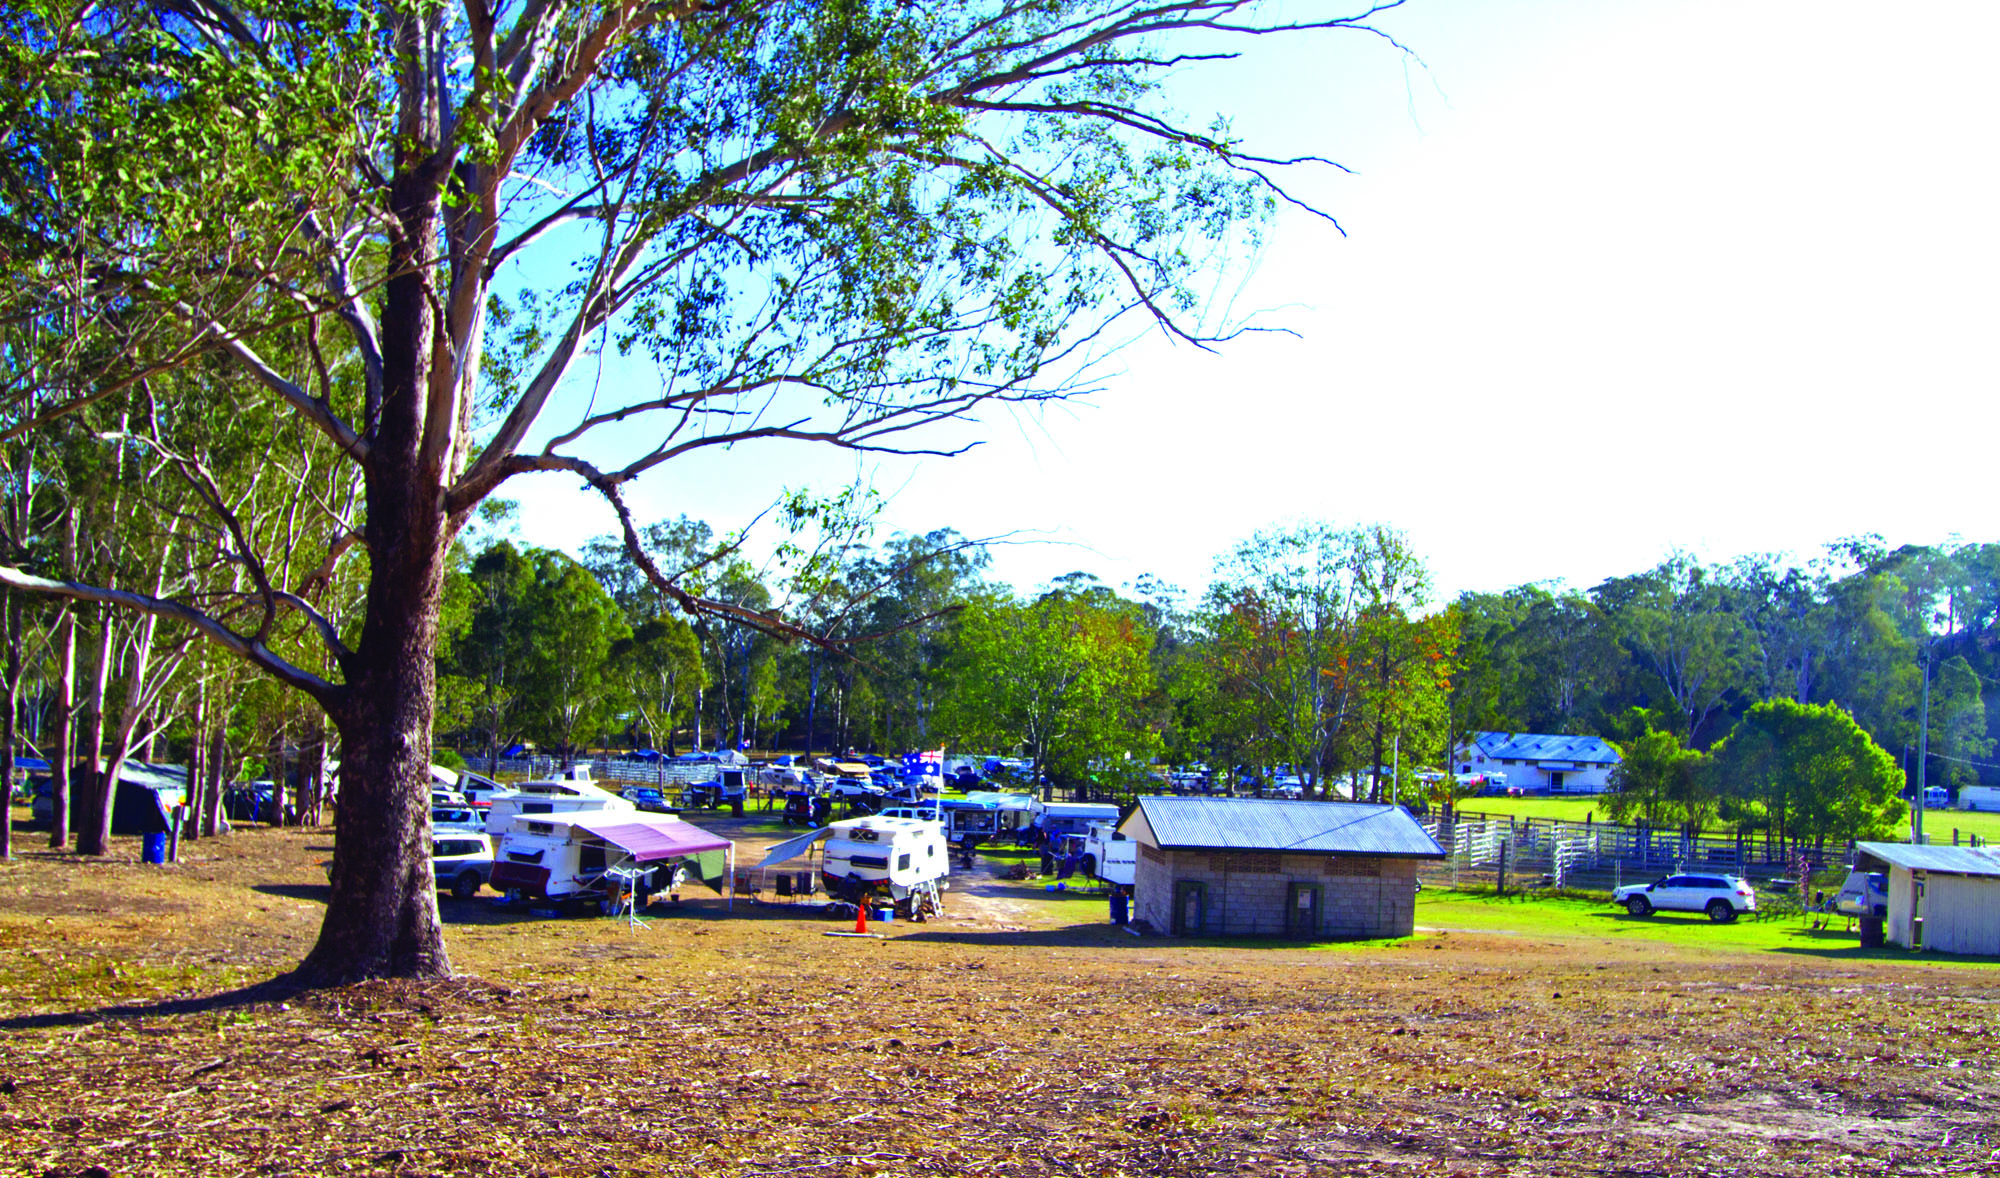 The campgrounds in Bonalbo